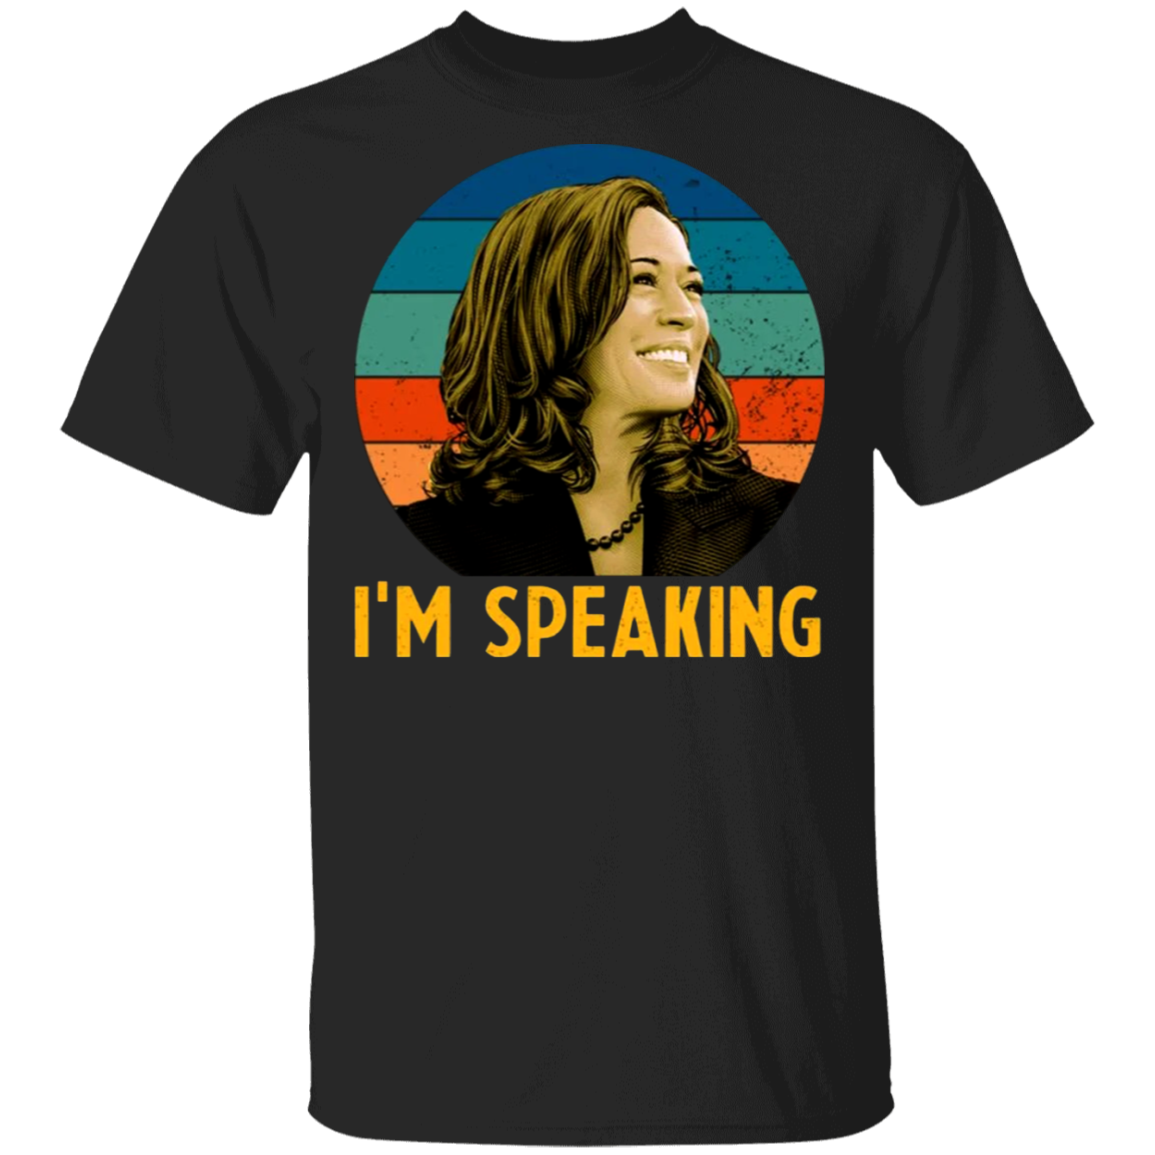 I'm Speaking Kamala T-Shirt Vintage Graphic Tee VP Vice President Debate Kamala Harris Merch